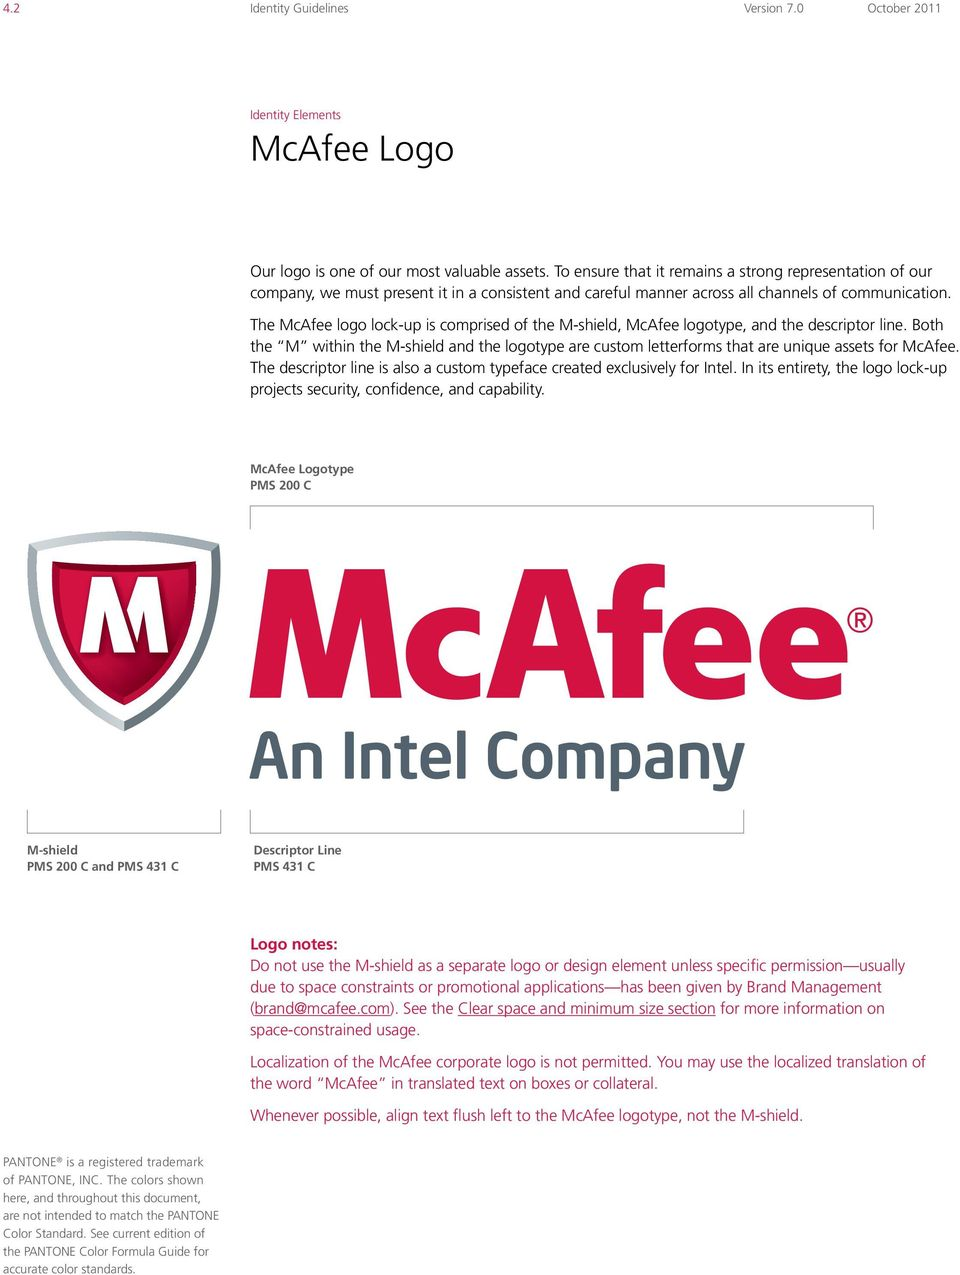 The McAfee logo lock-up is comprised of the M-shield, McAfee logotype, and the descriptor line.